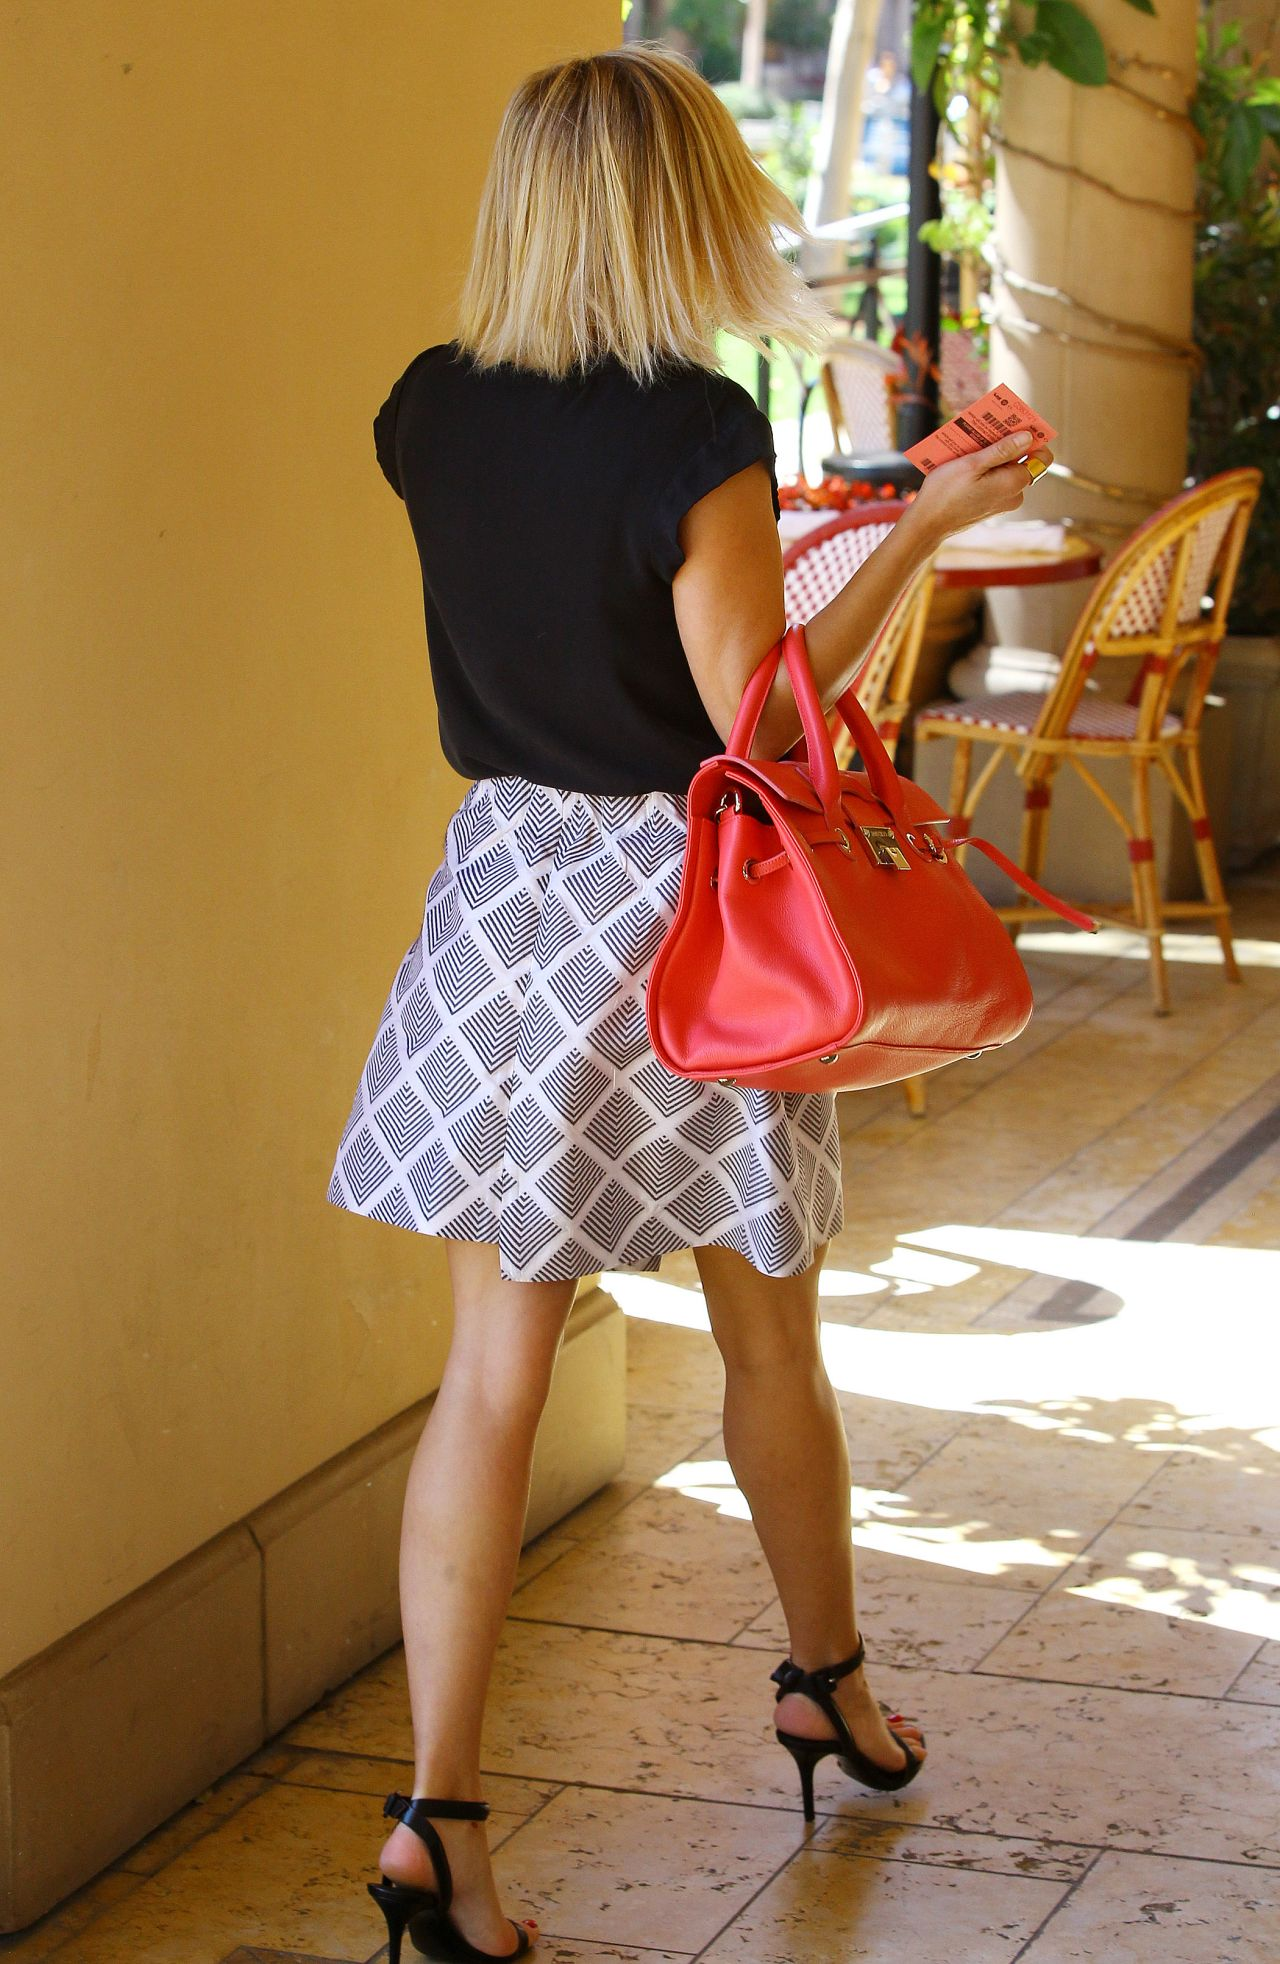 Reese Witherspoon Flaunts Legs In Miniskirt Bouchon In